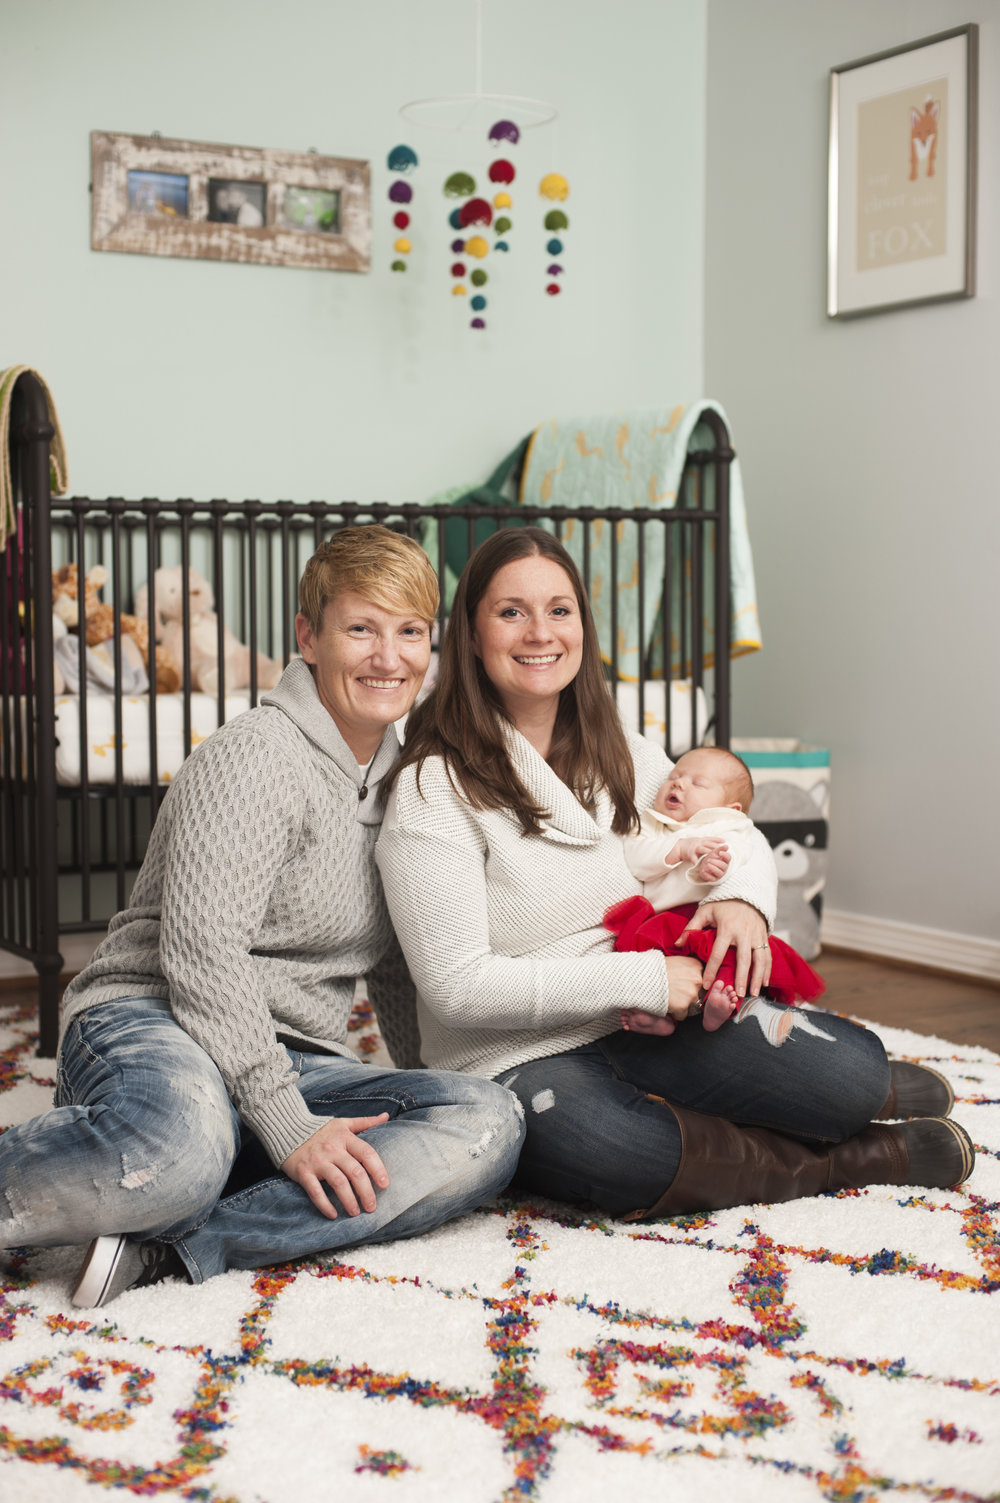 Two mothers seated with newborn in nursery.